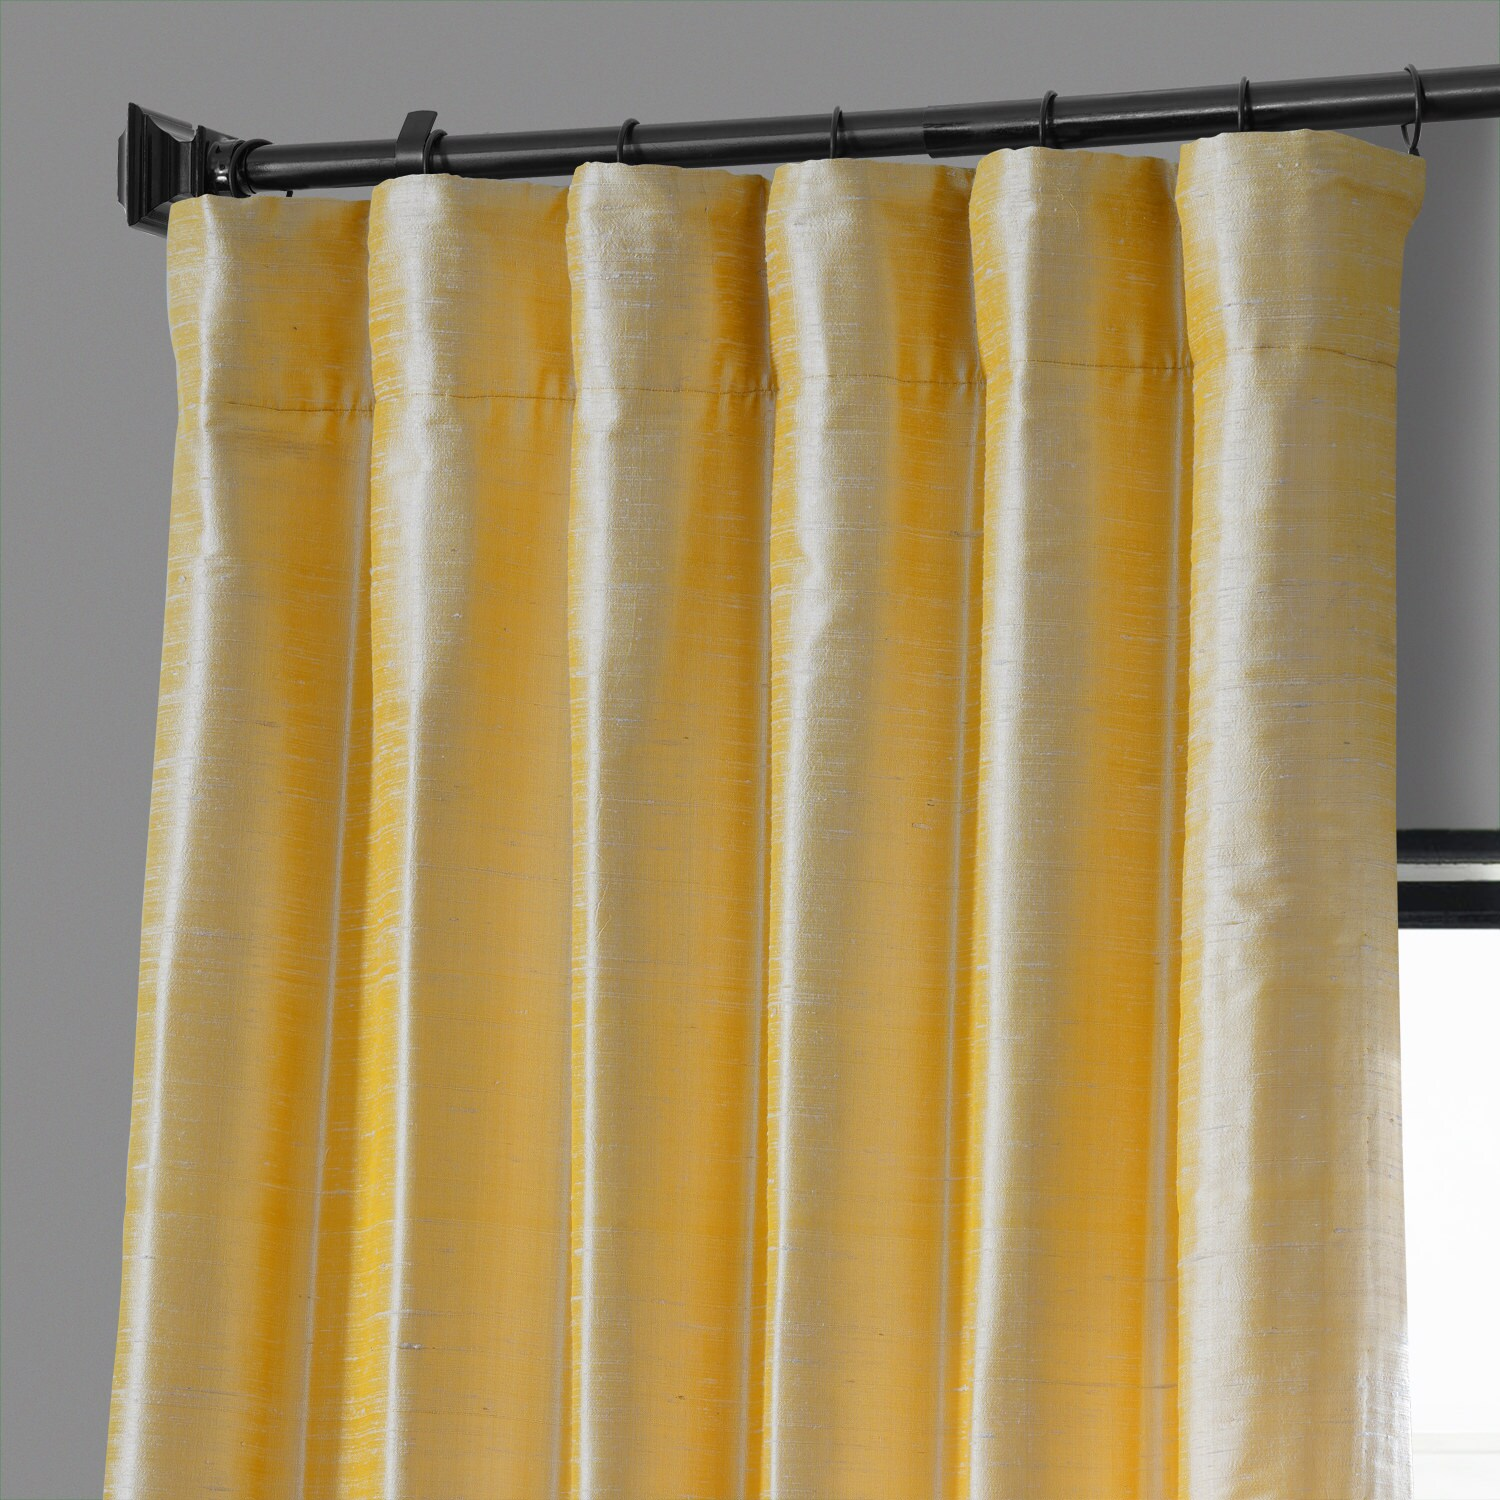 Honey Gold Textured Dupioni Silk Curtain